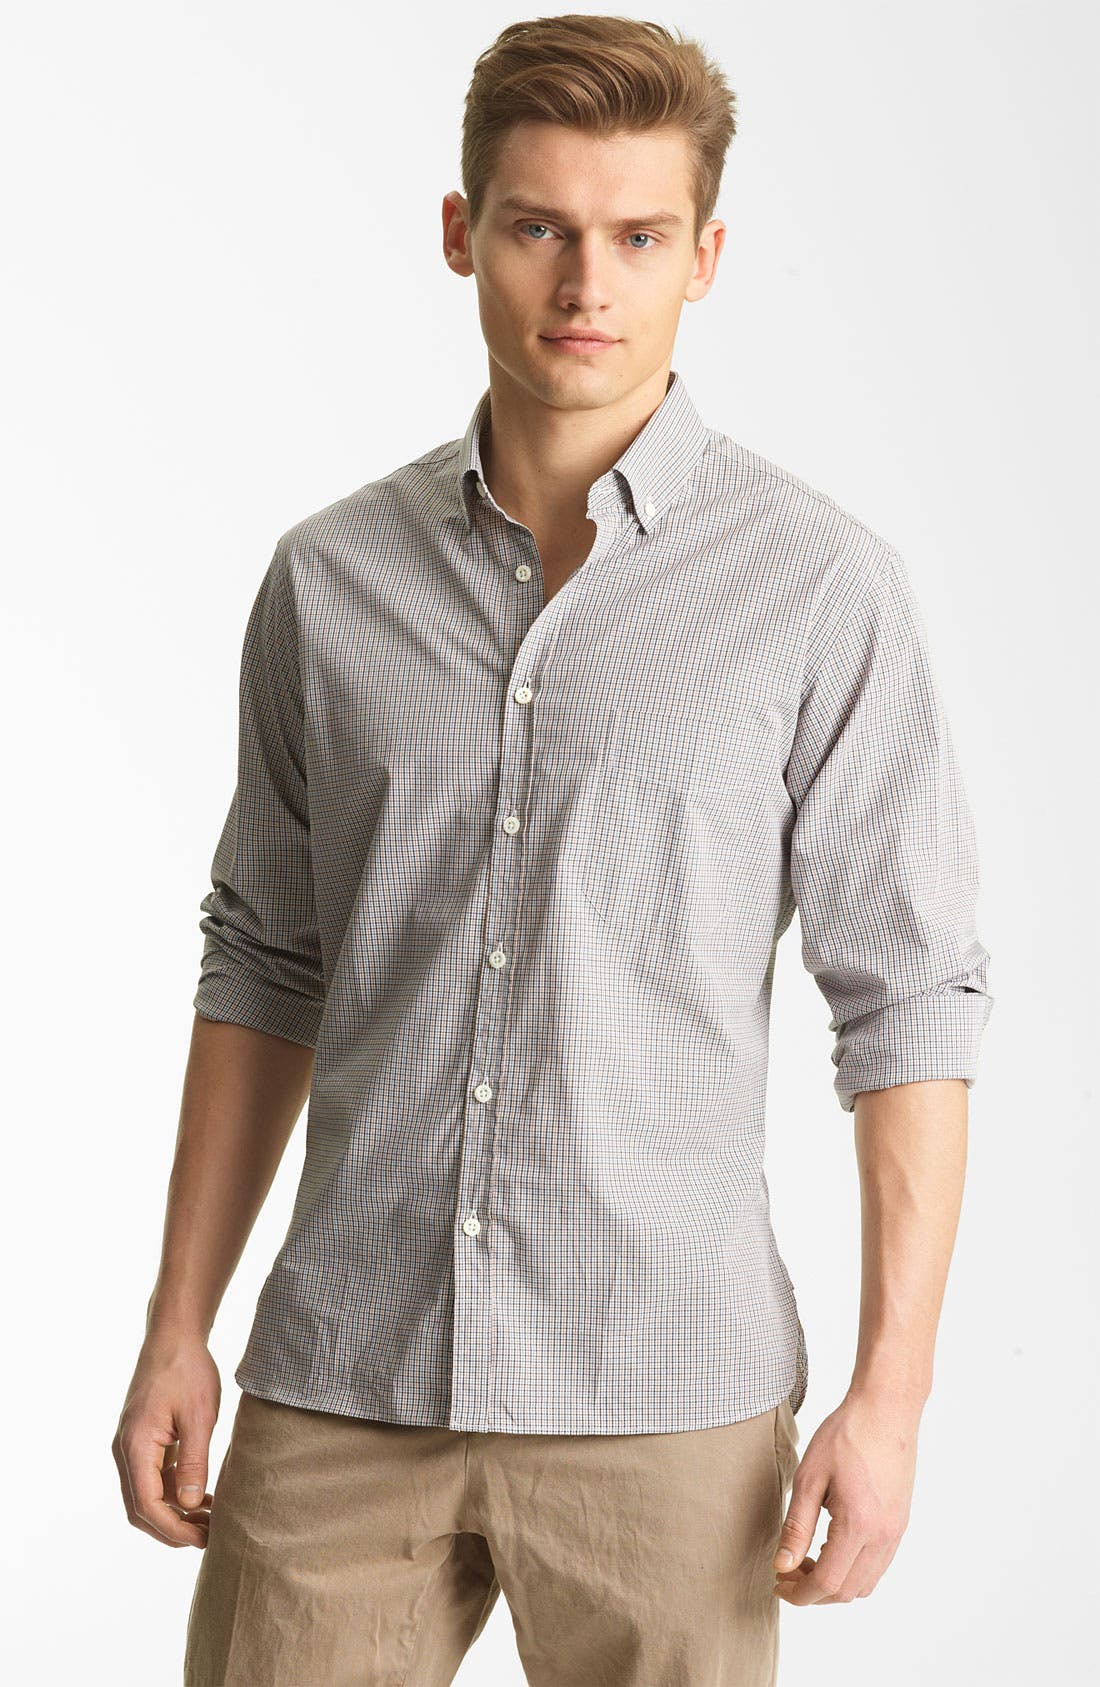 Alternate Image 1 Selected - Billy Reid 'Rosedale' Micro Check Woven Shirt